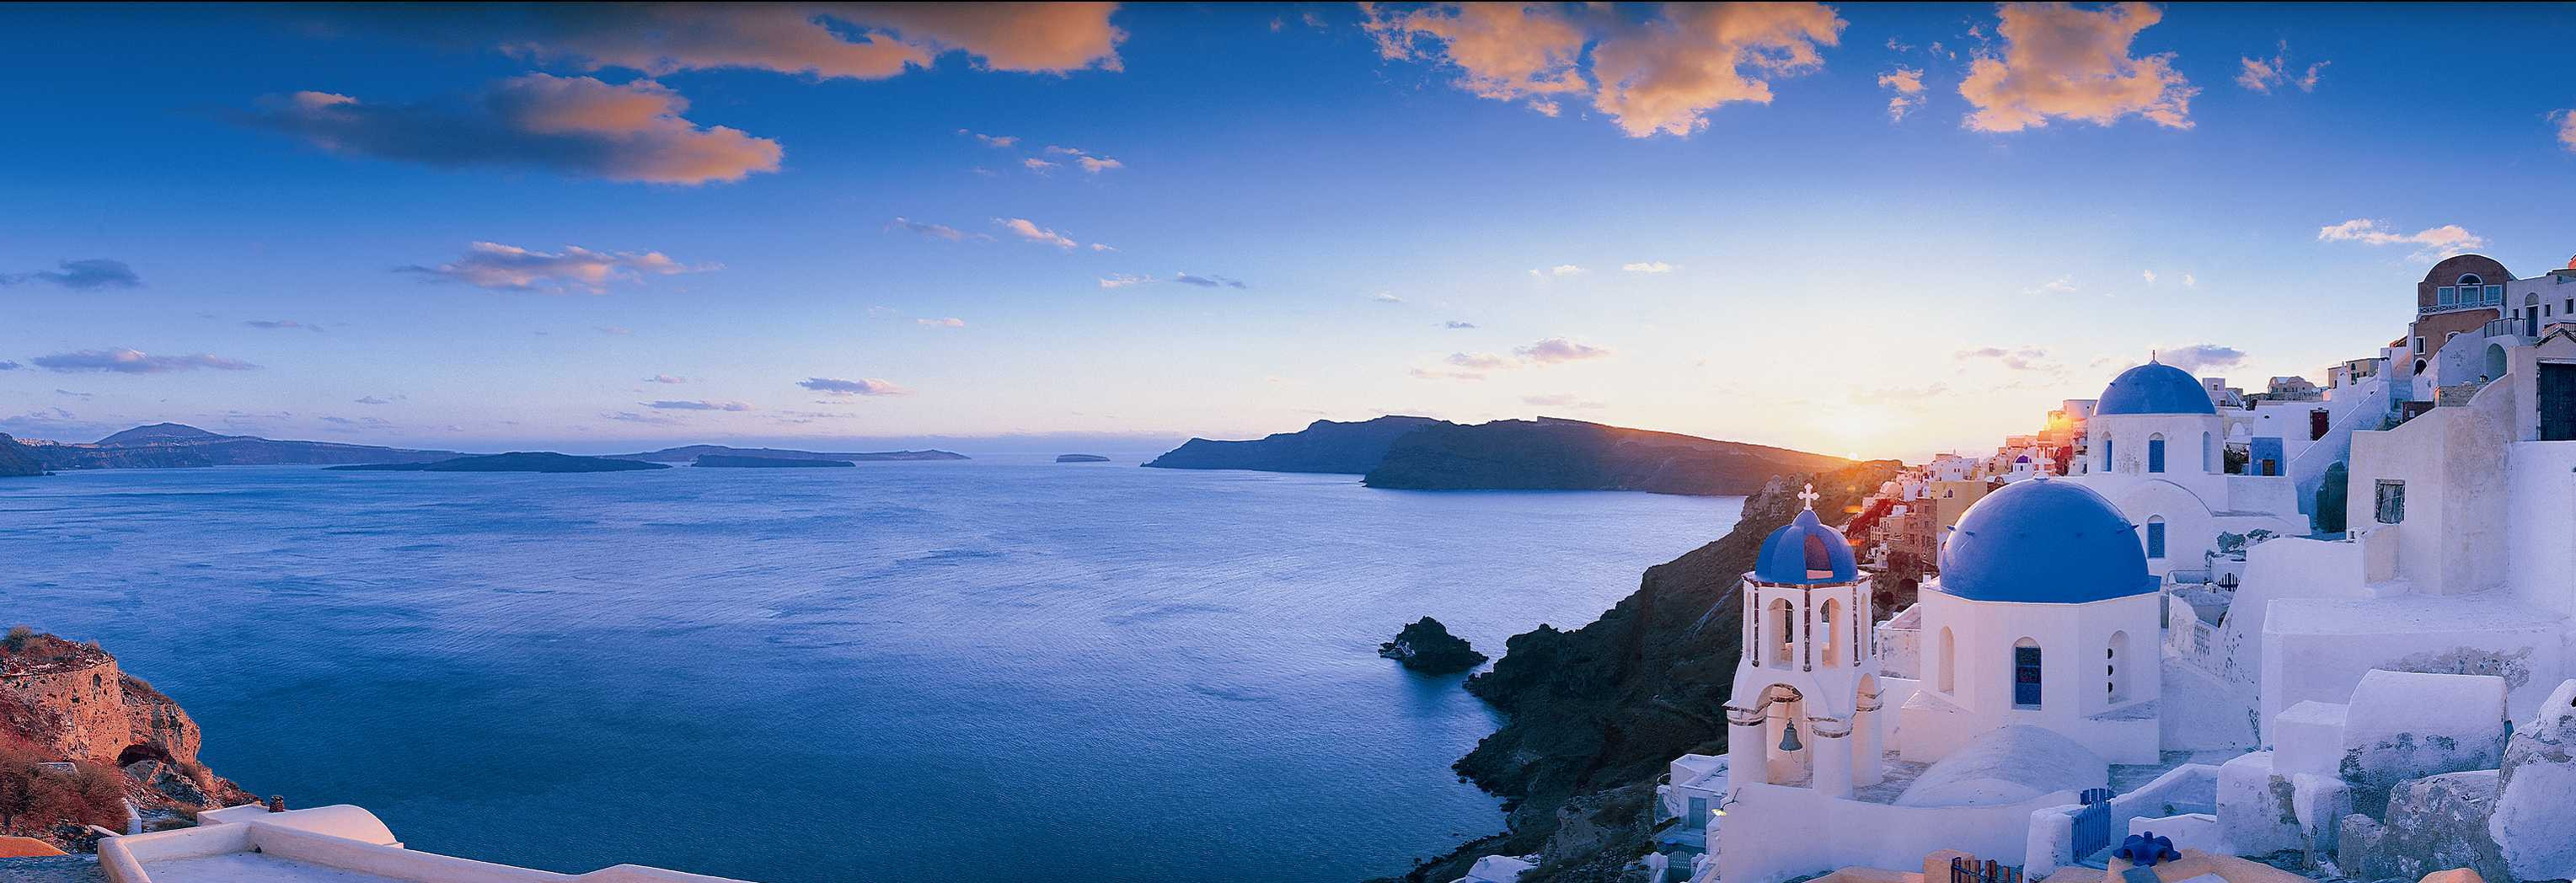 Sunset on the coast of Santorini